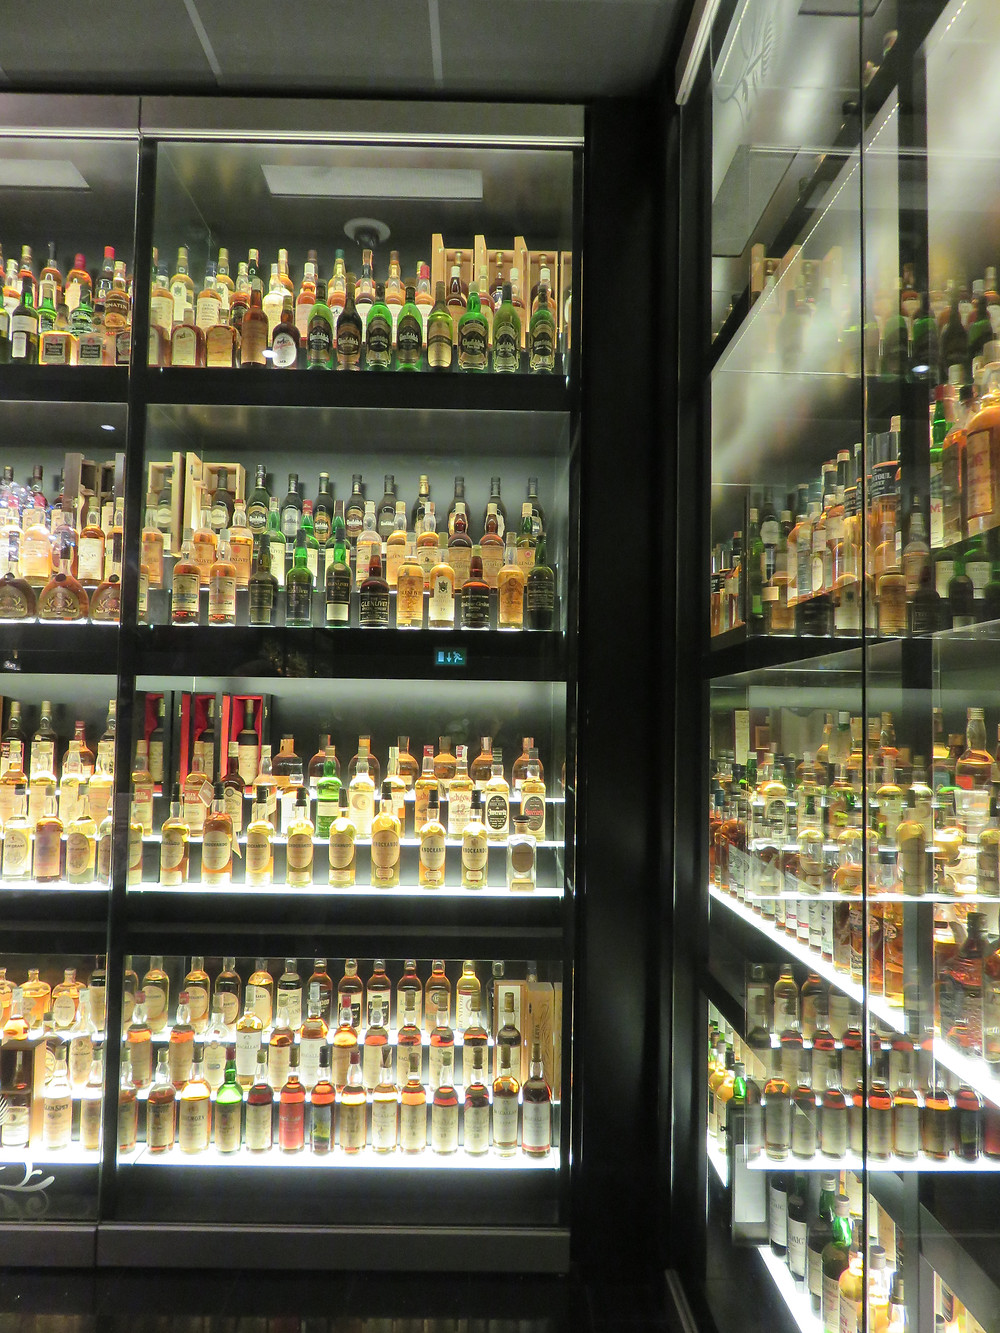 Scotch whisky collection